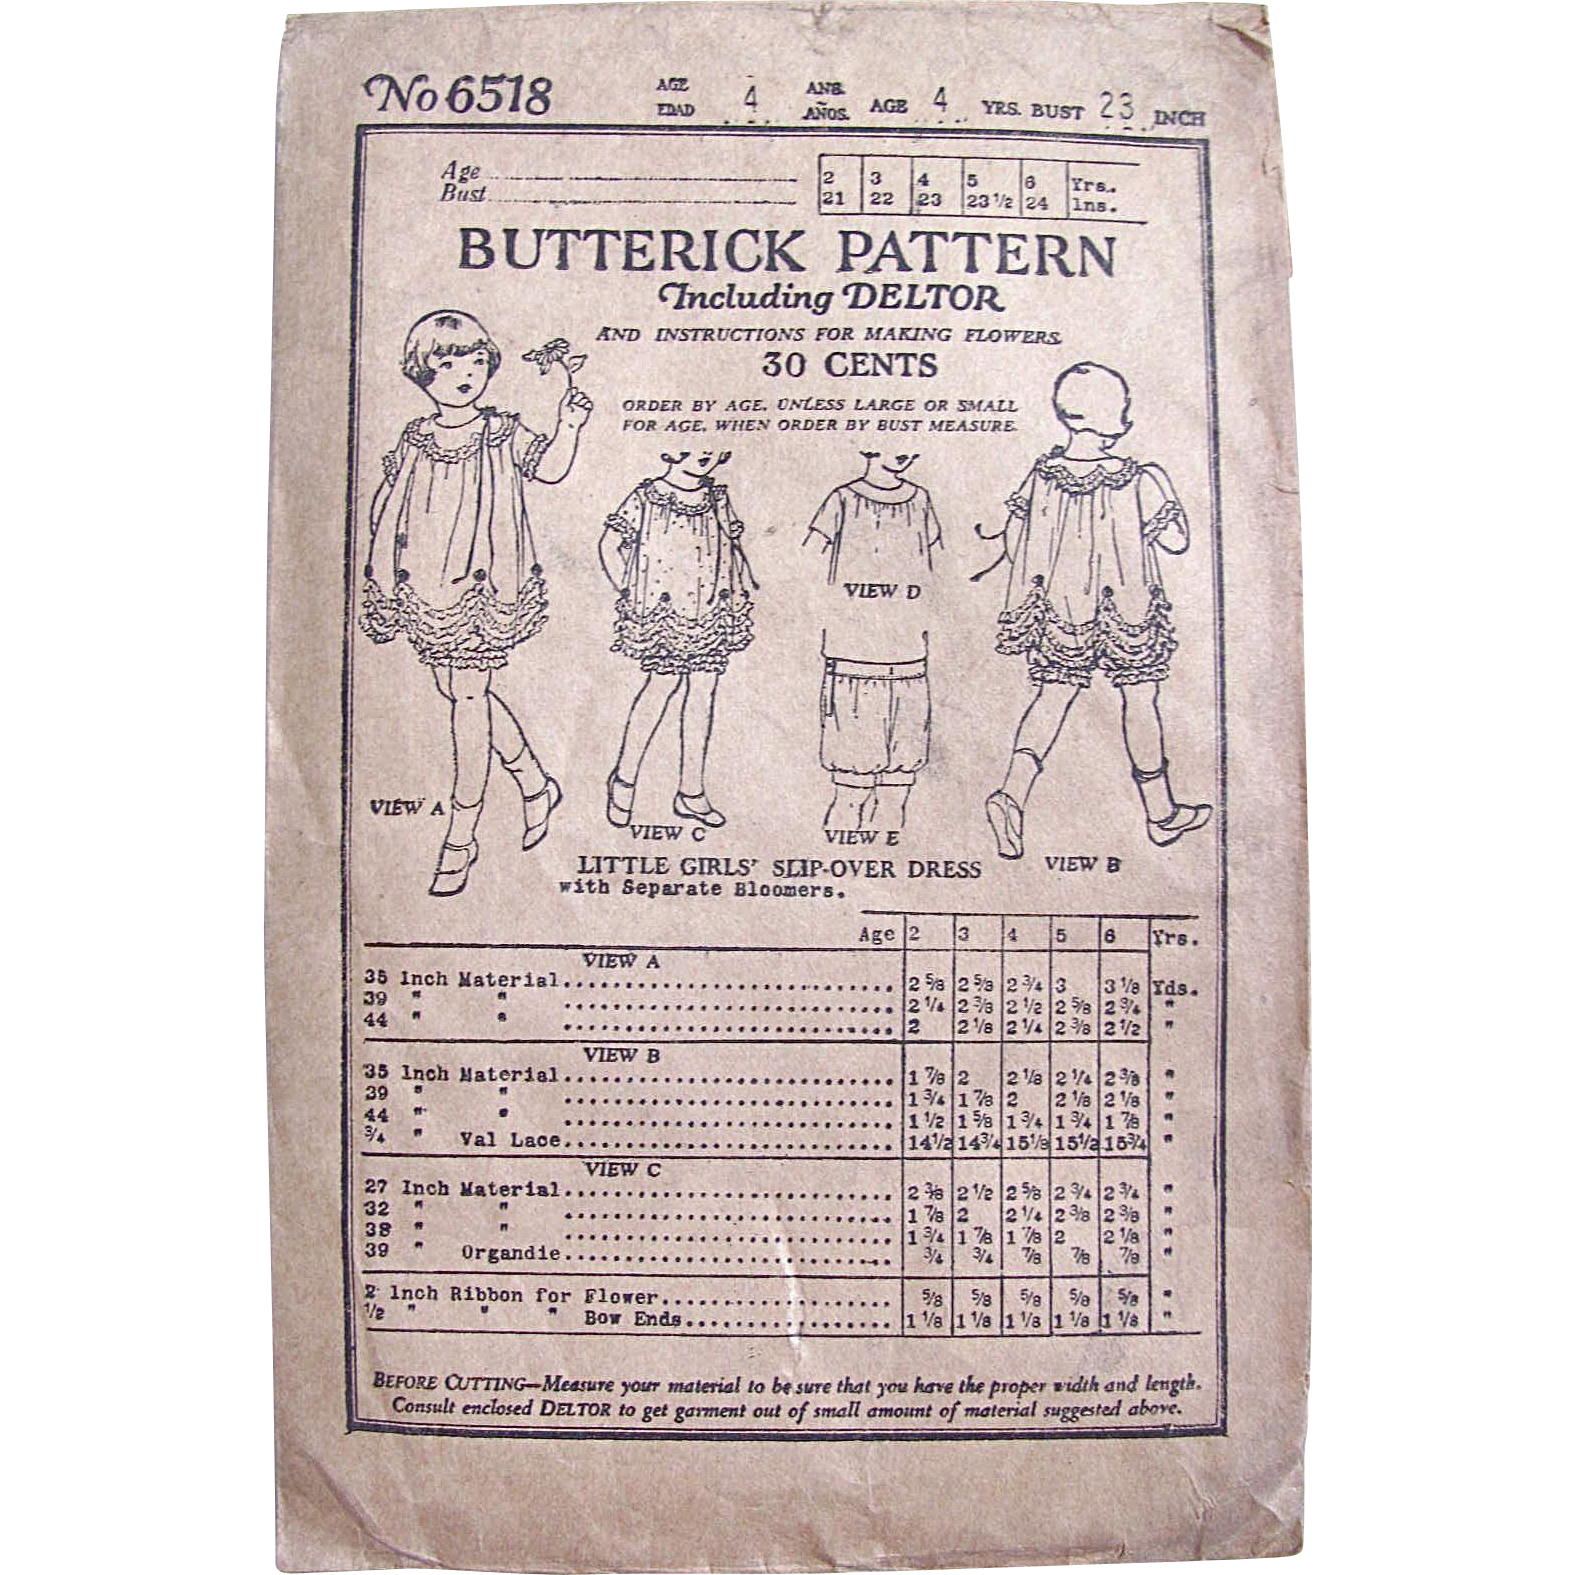 Butterick Pattern 6518, Little Girls' Slip-over Dress With Matching Bloomers, Vintage 1923, Size 4 Years, Complete, Unused